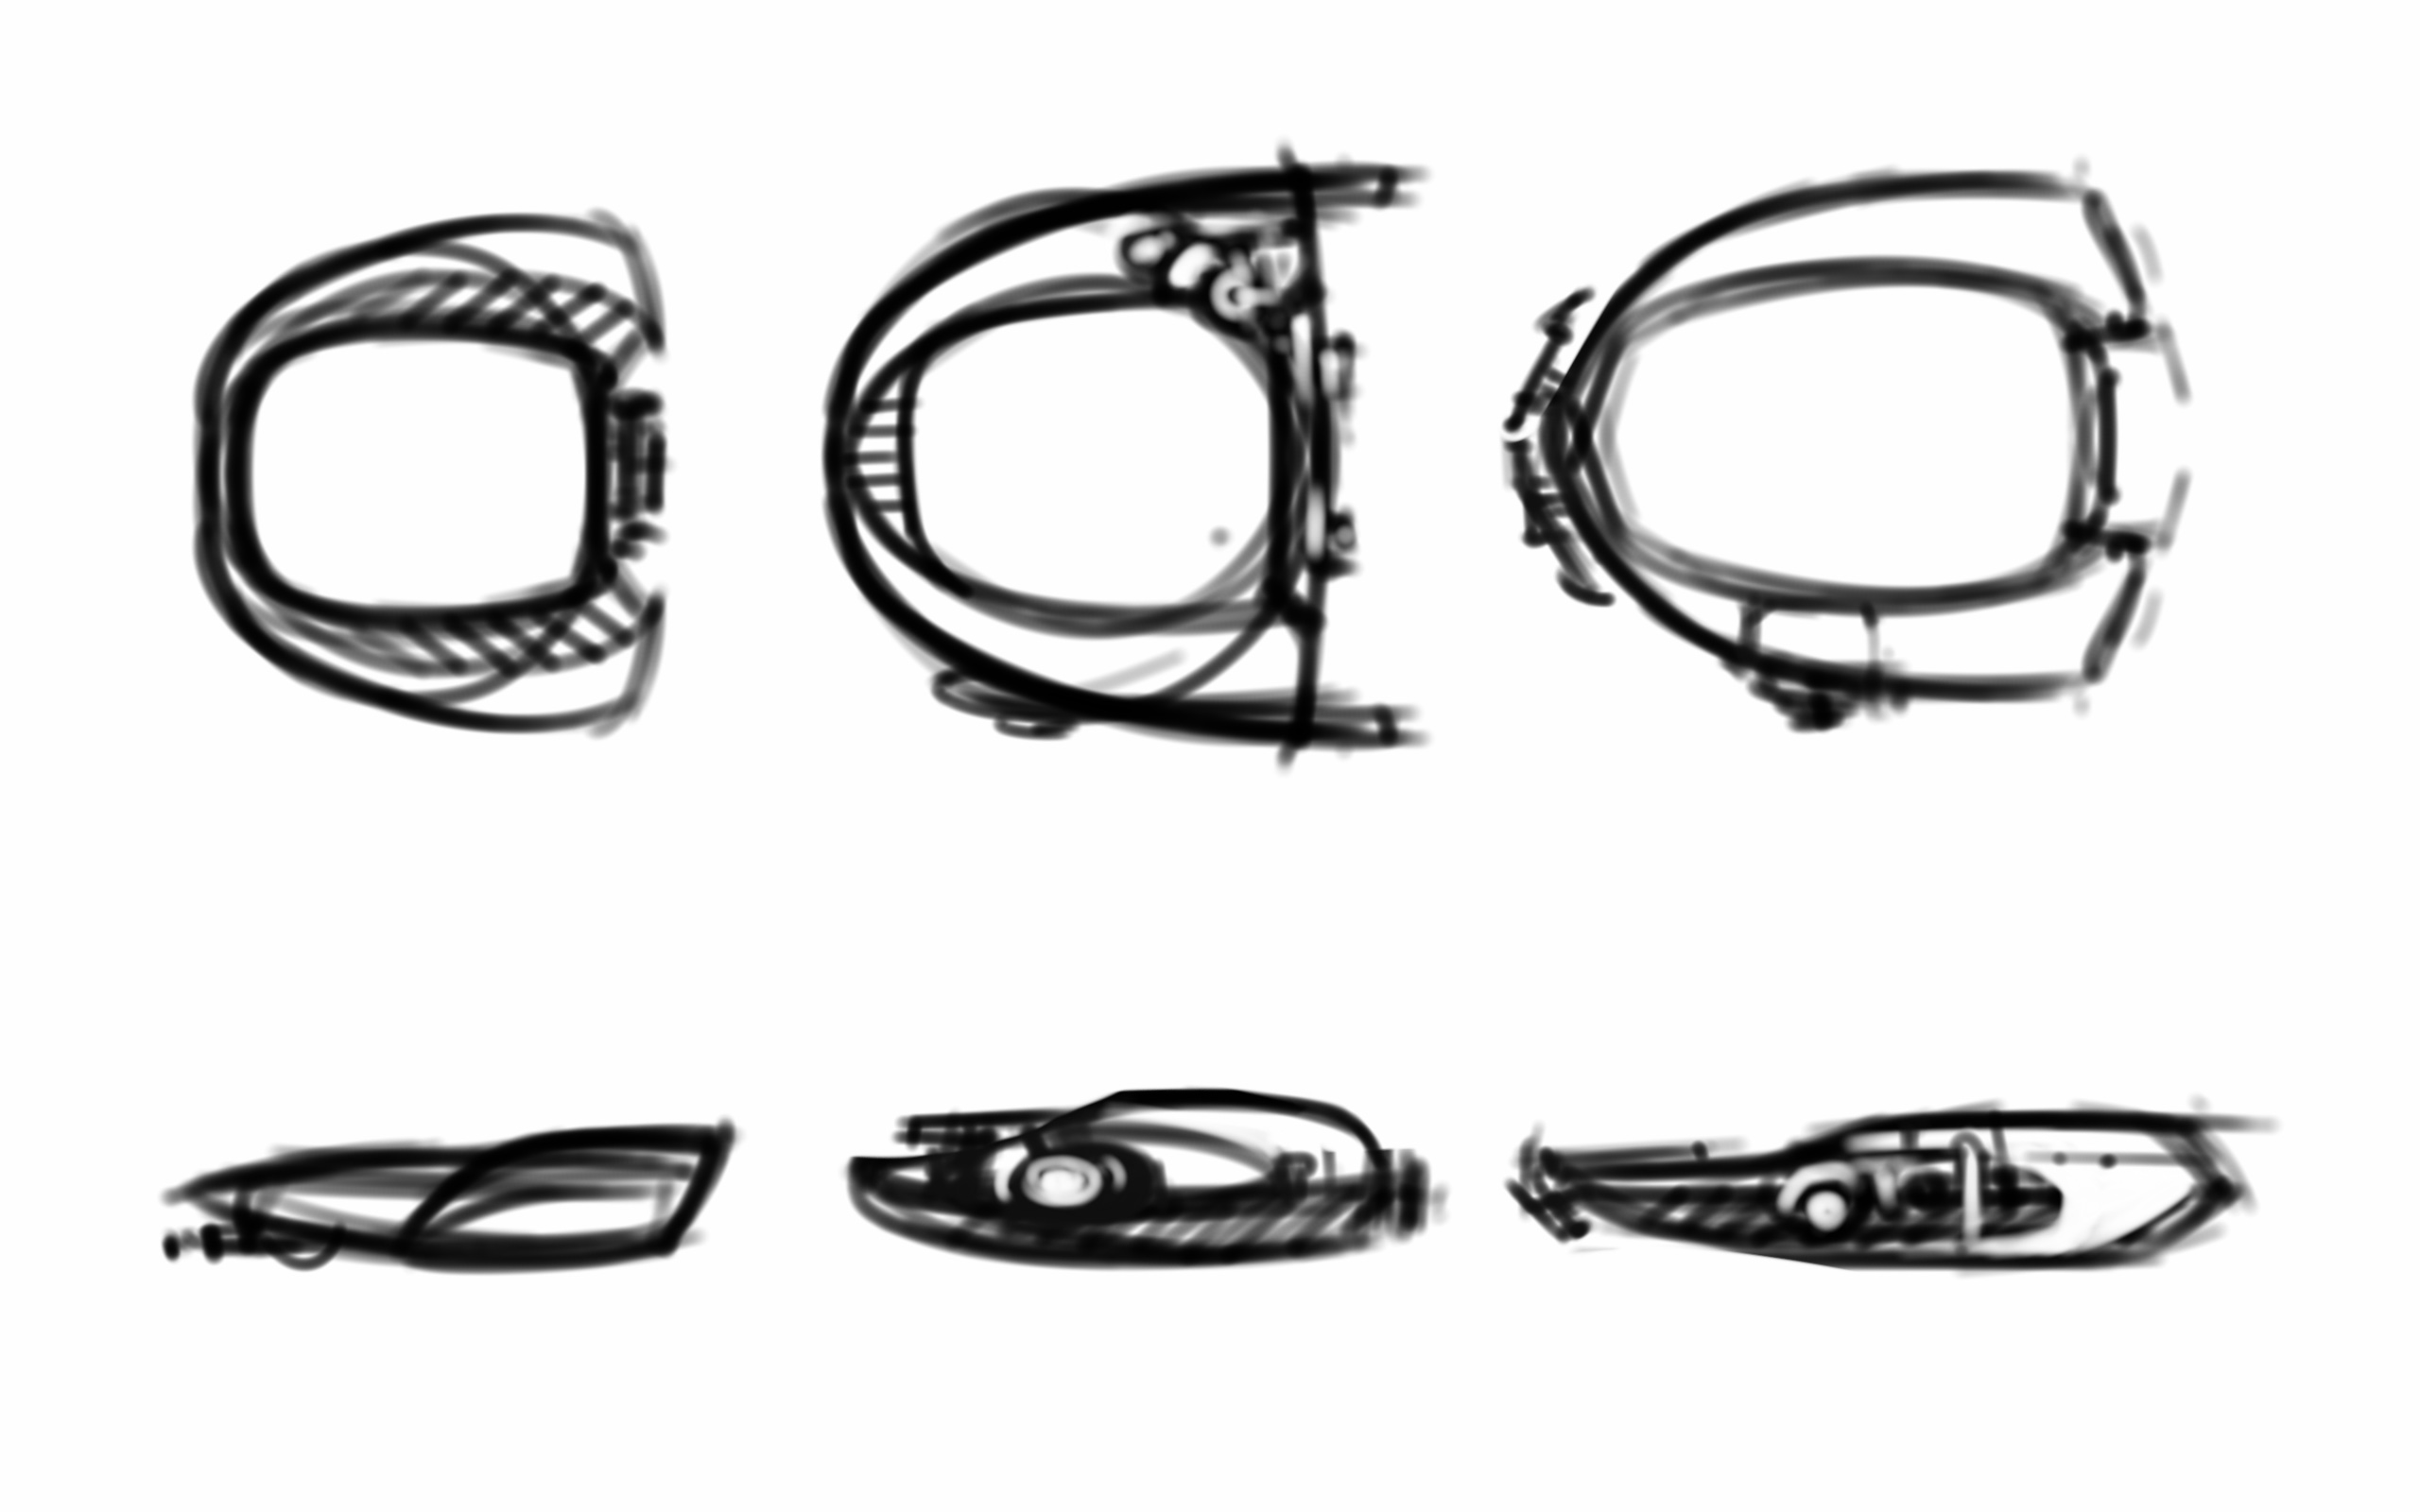 ORTHO - Sketches